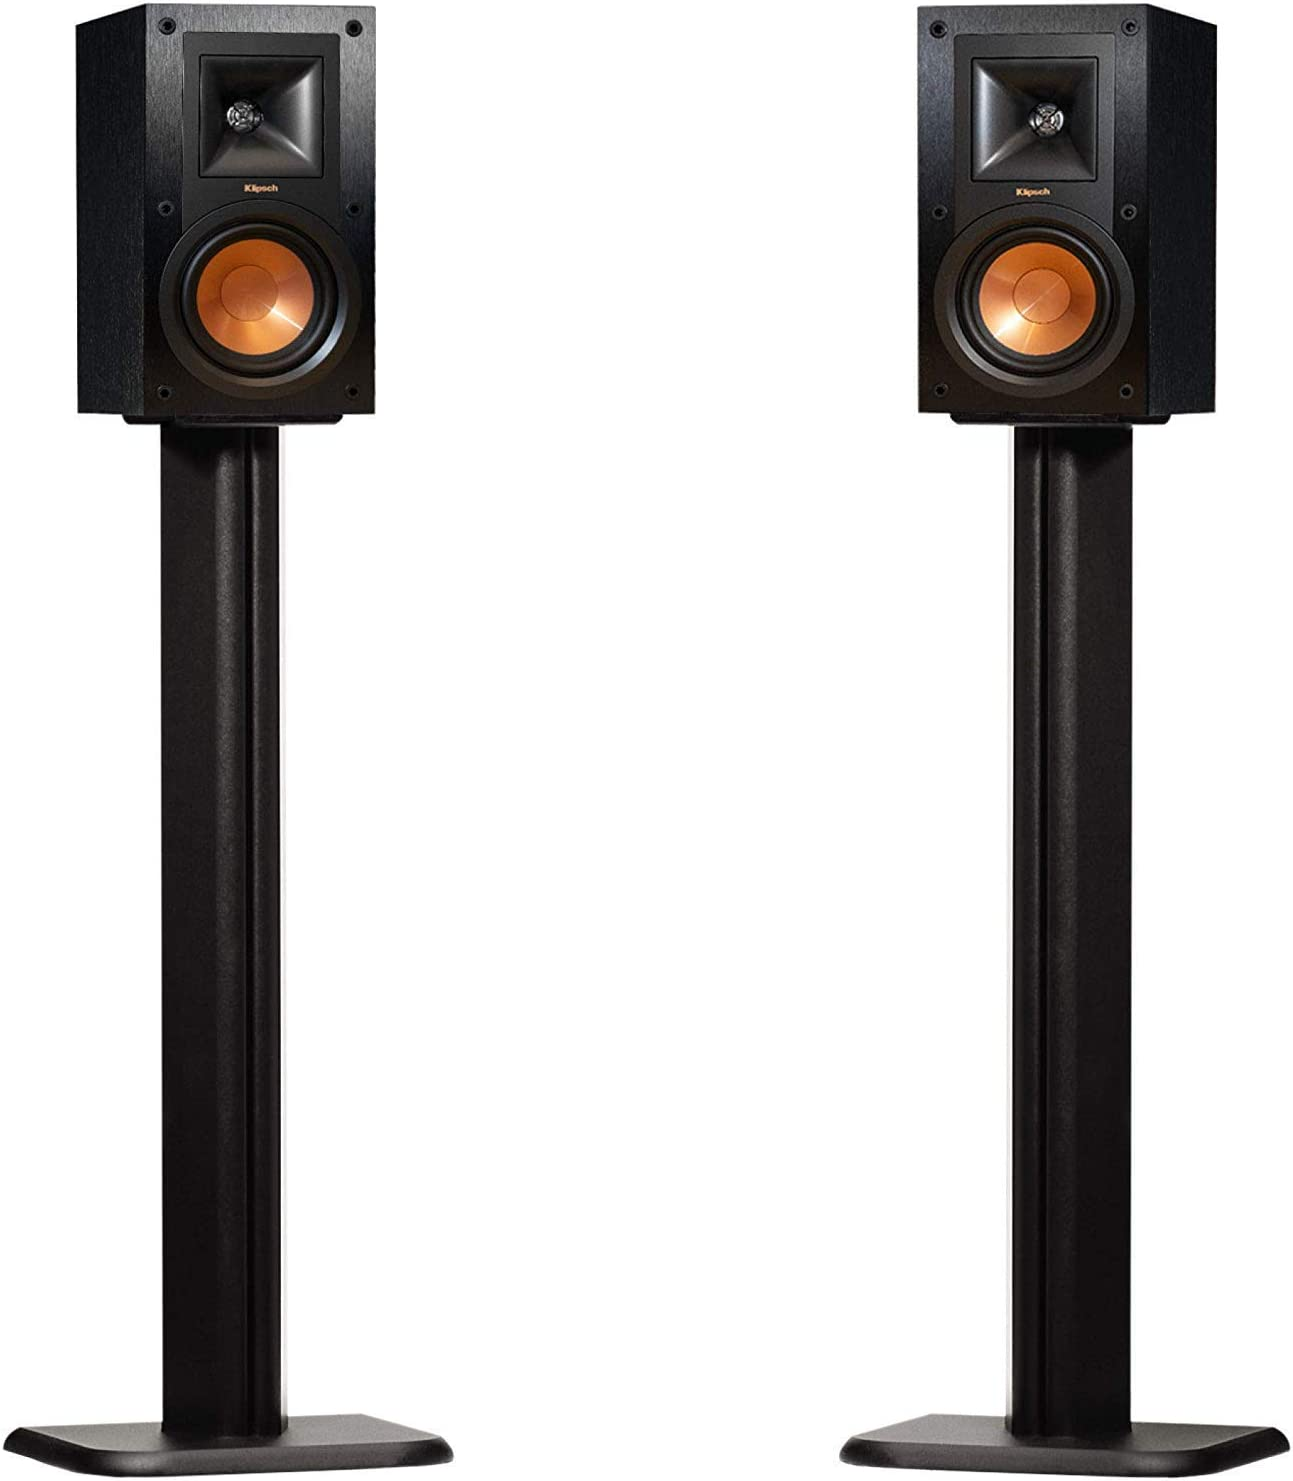 ECHOGEAR Bookshelf Speaker Stand Pair - Heavy Duty MDF Energy-Absorbing Design - Works with Klipsch